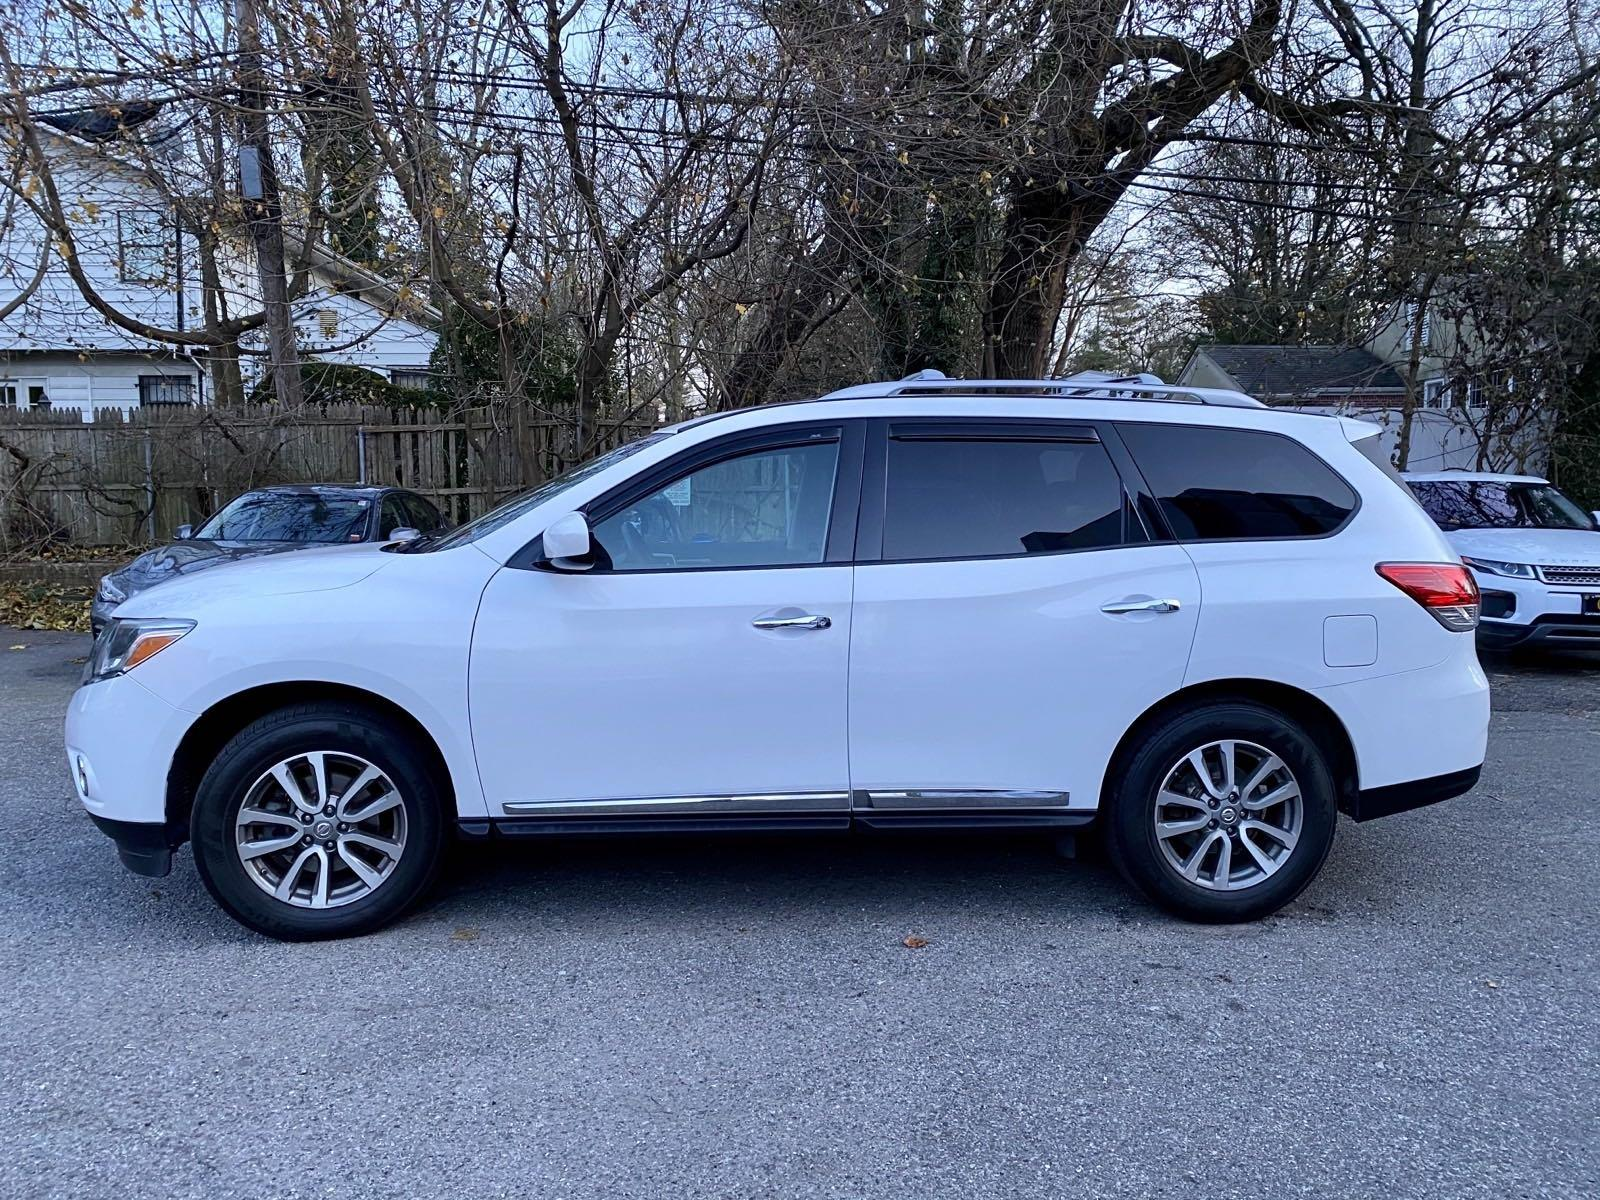 Used-2014-Nissan-Pathfinder-SL